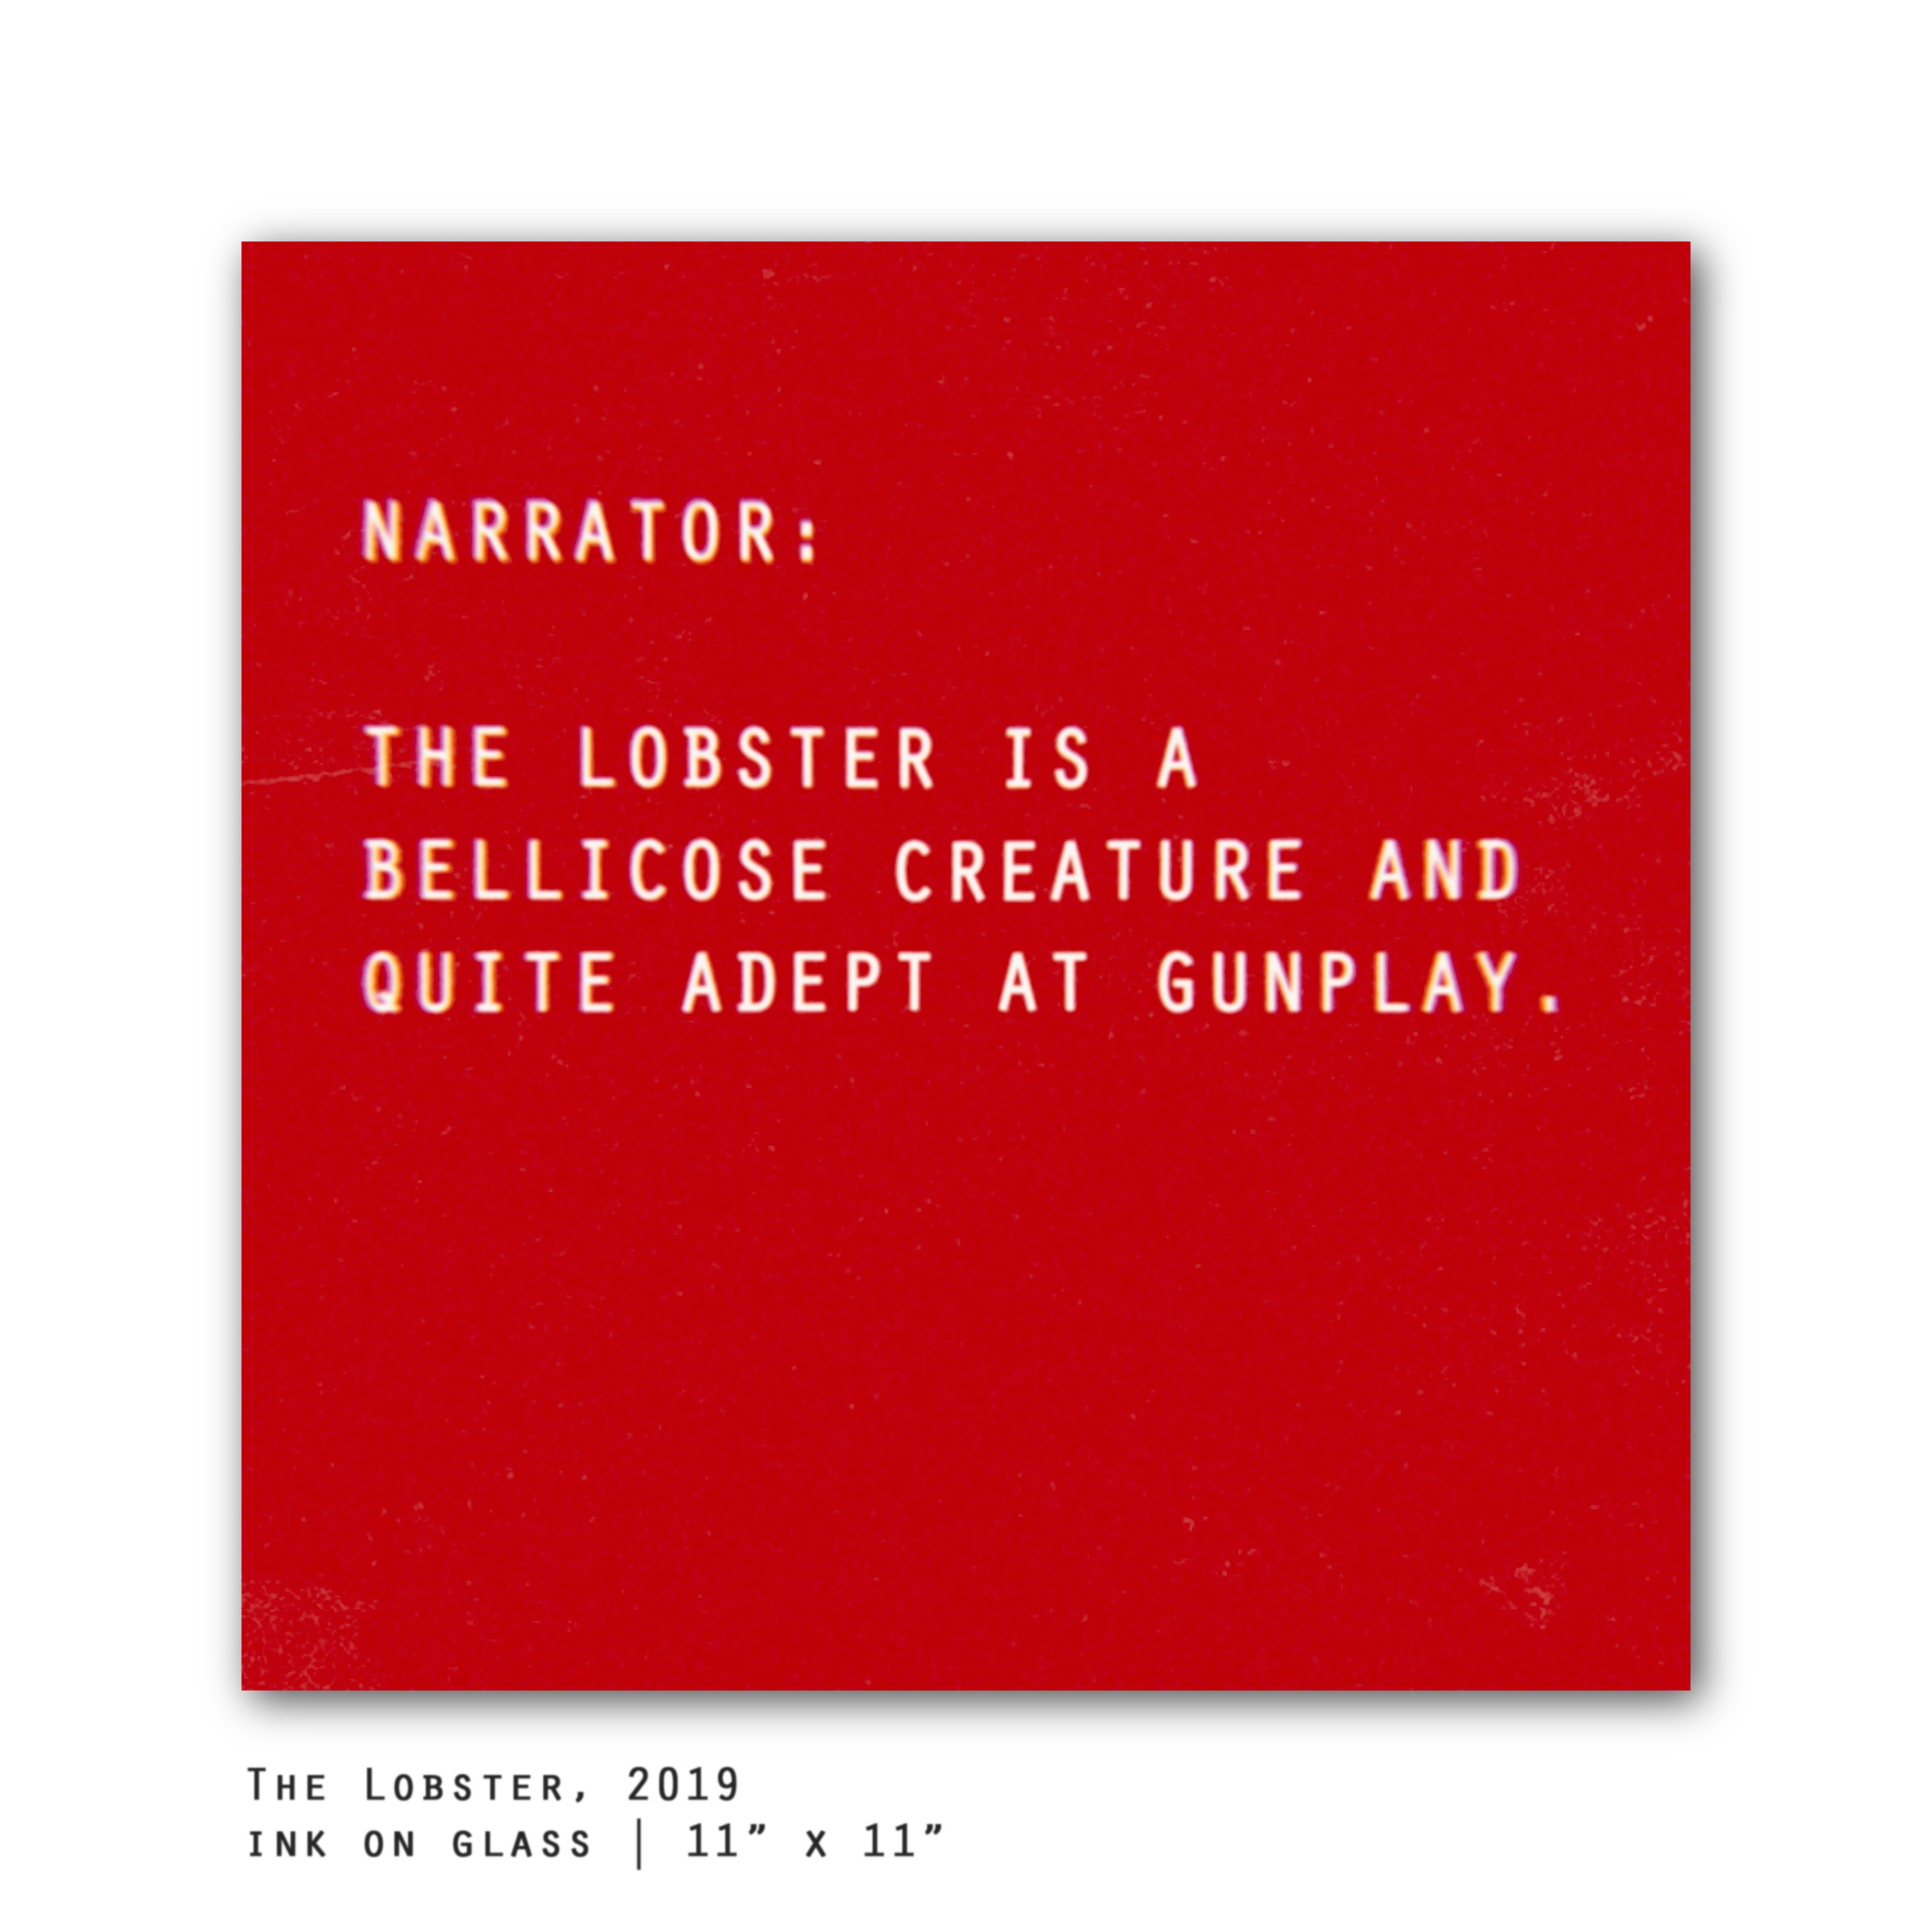 1_The_Lobster_text_with_shadow_revisited.jpg